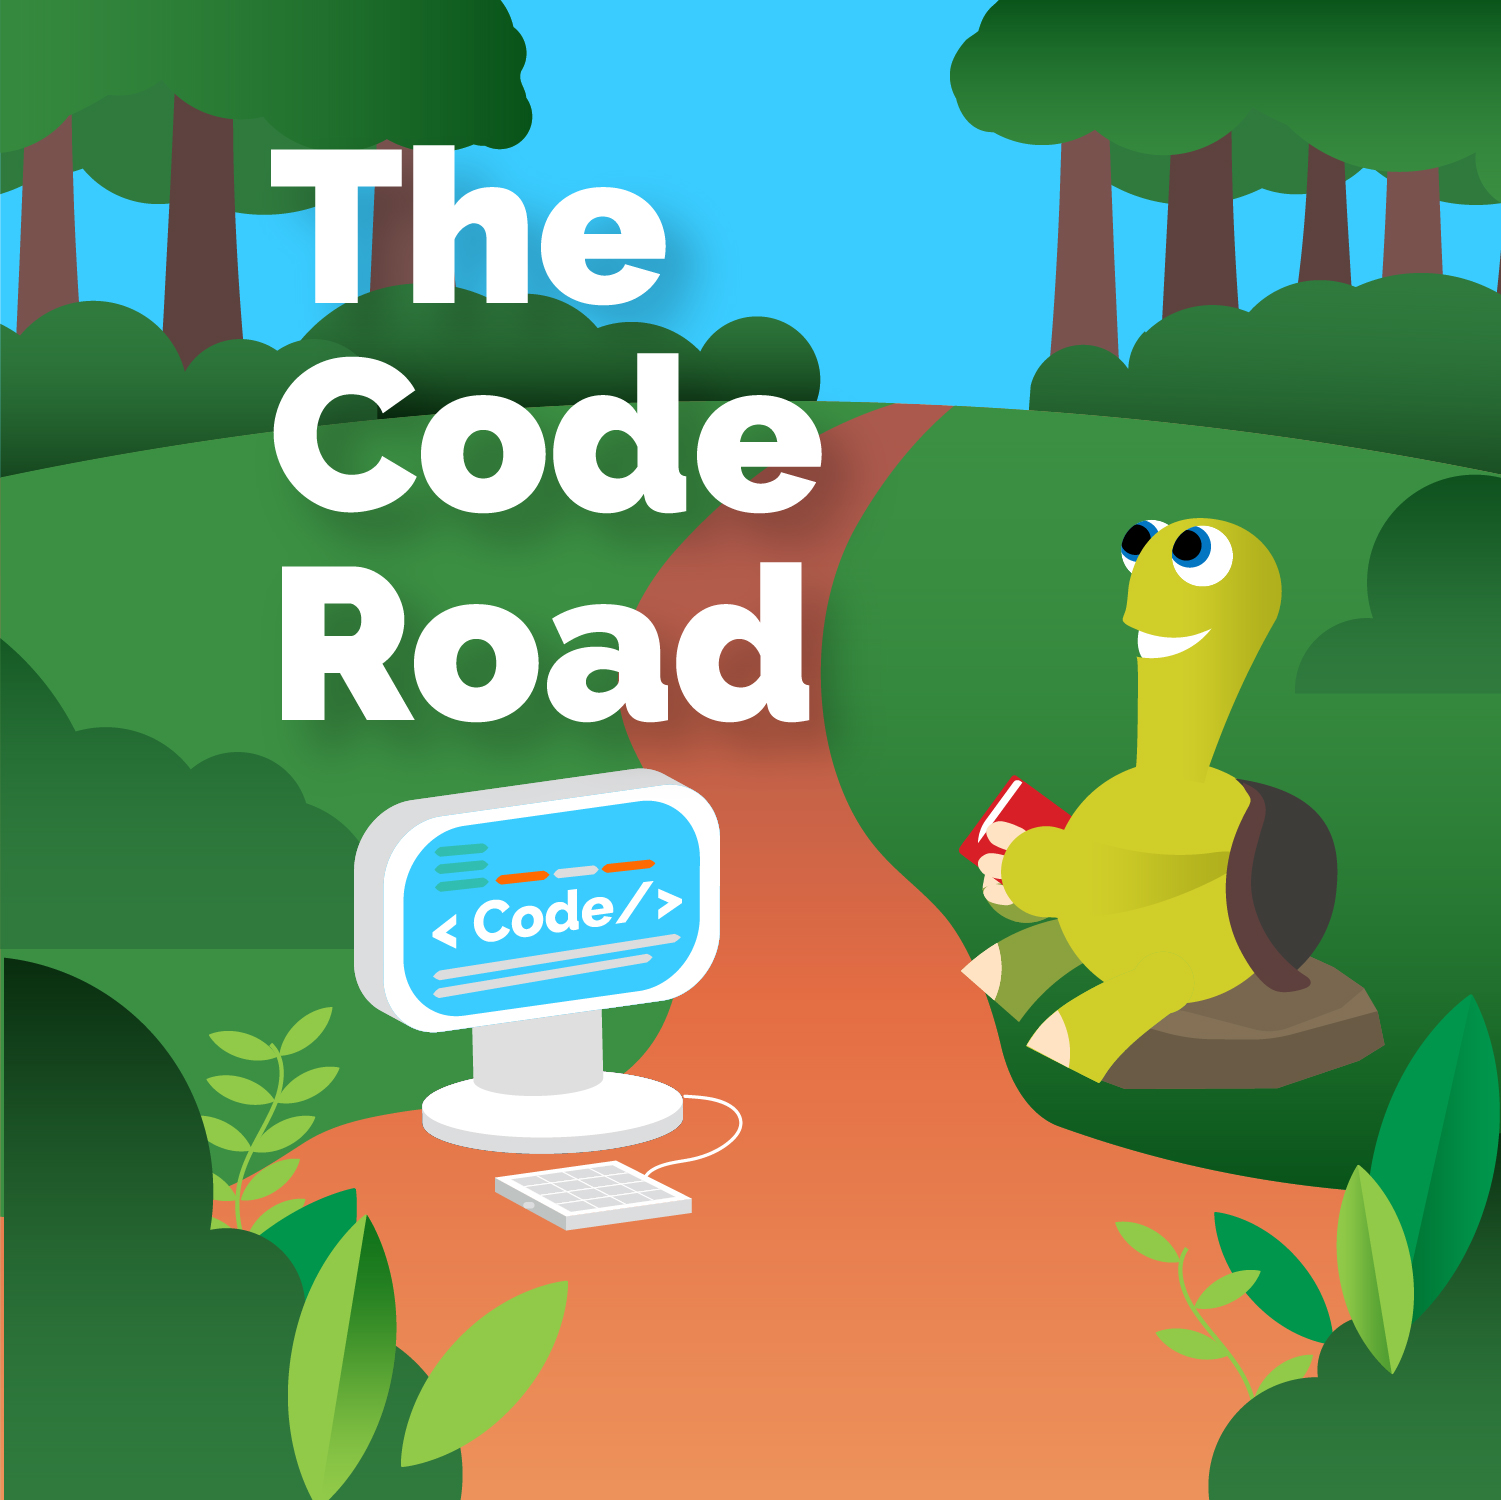 The Code Road